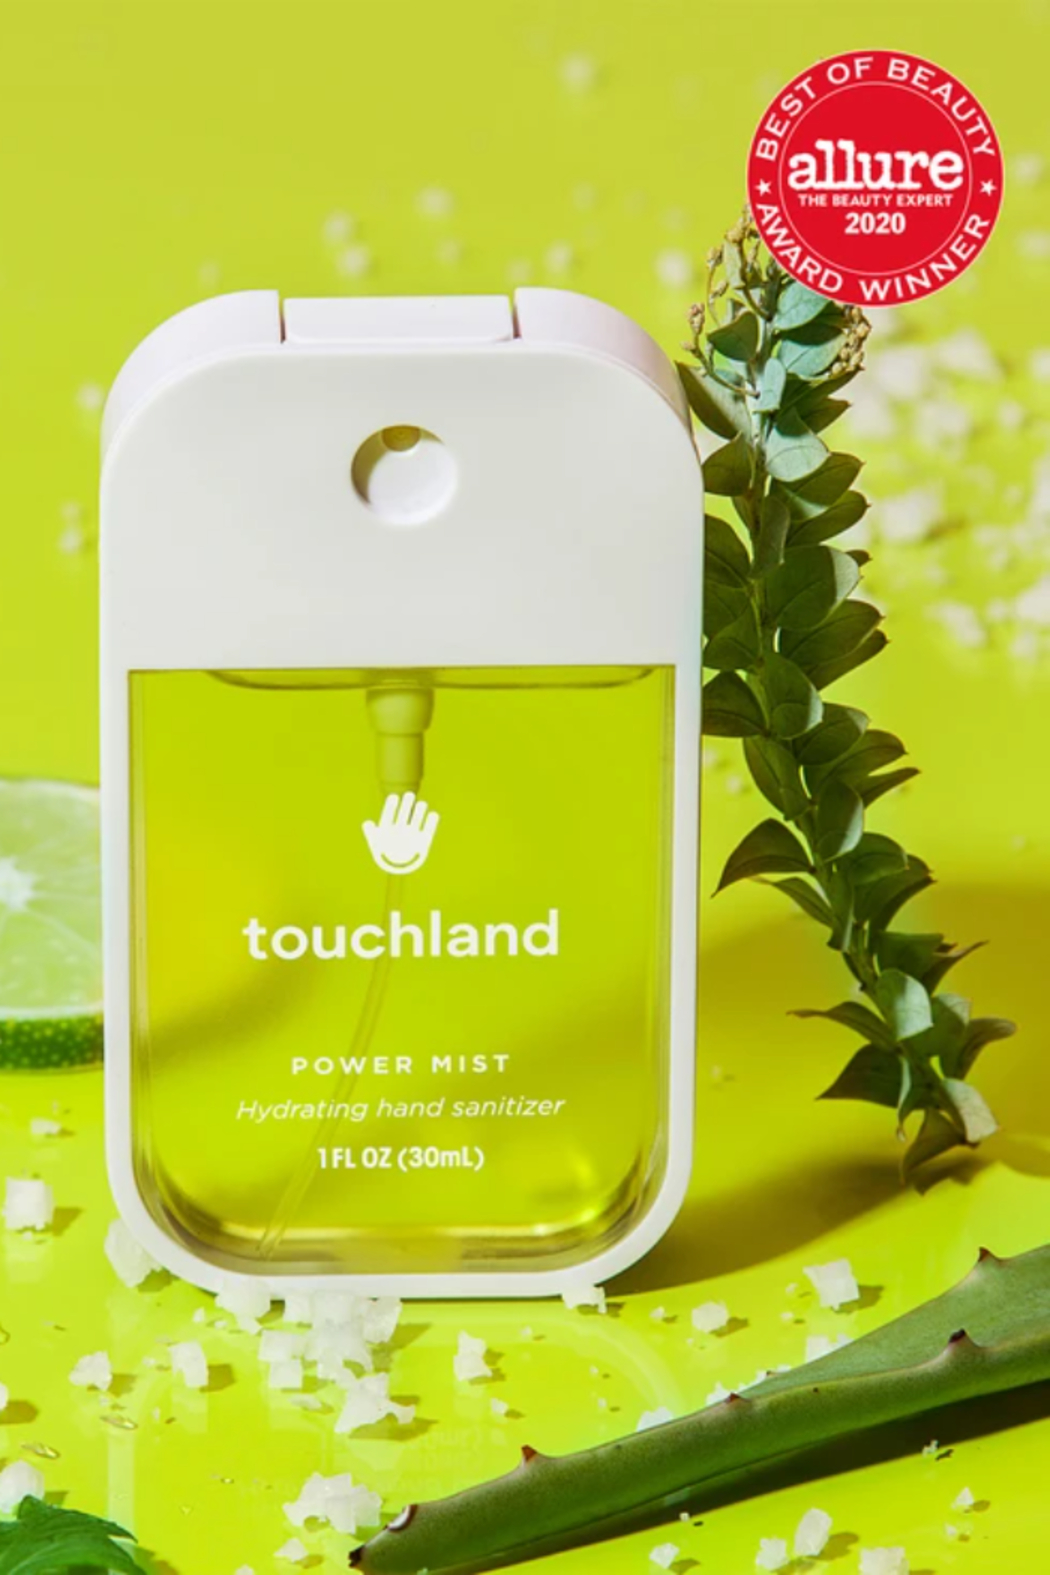 touchland Touchland Power Mist - Main Image